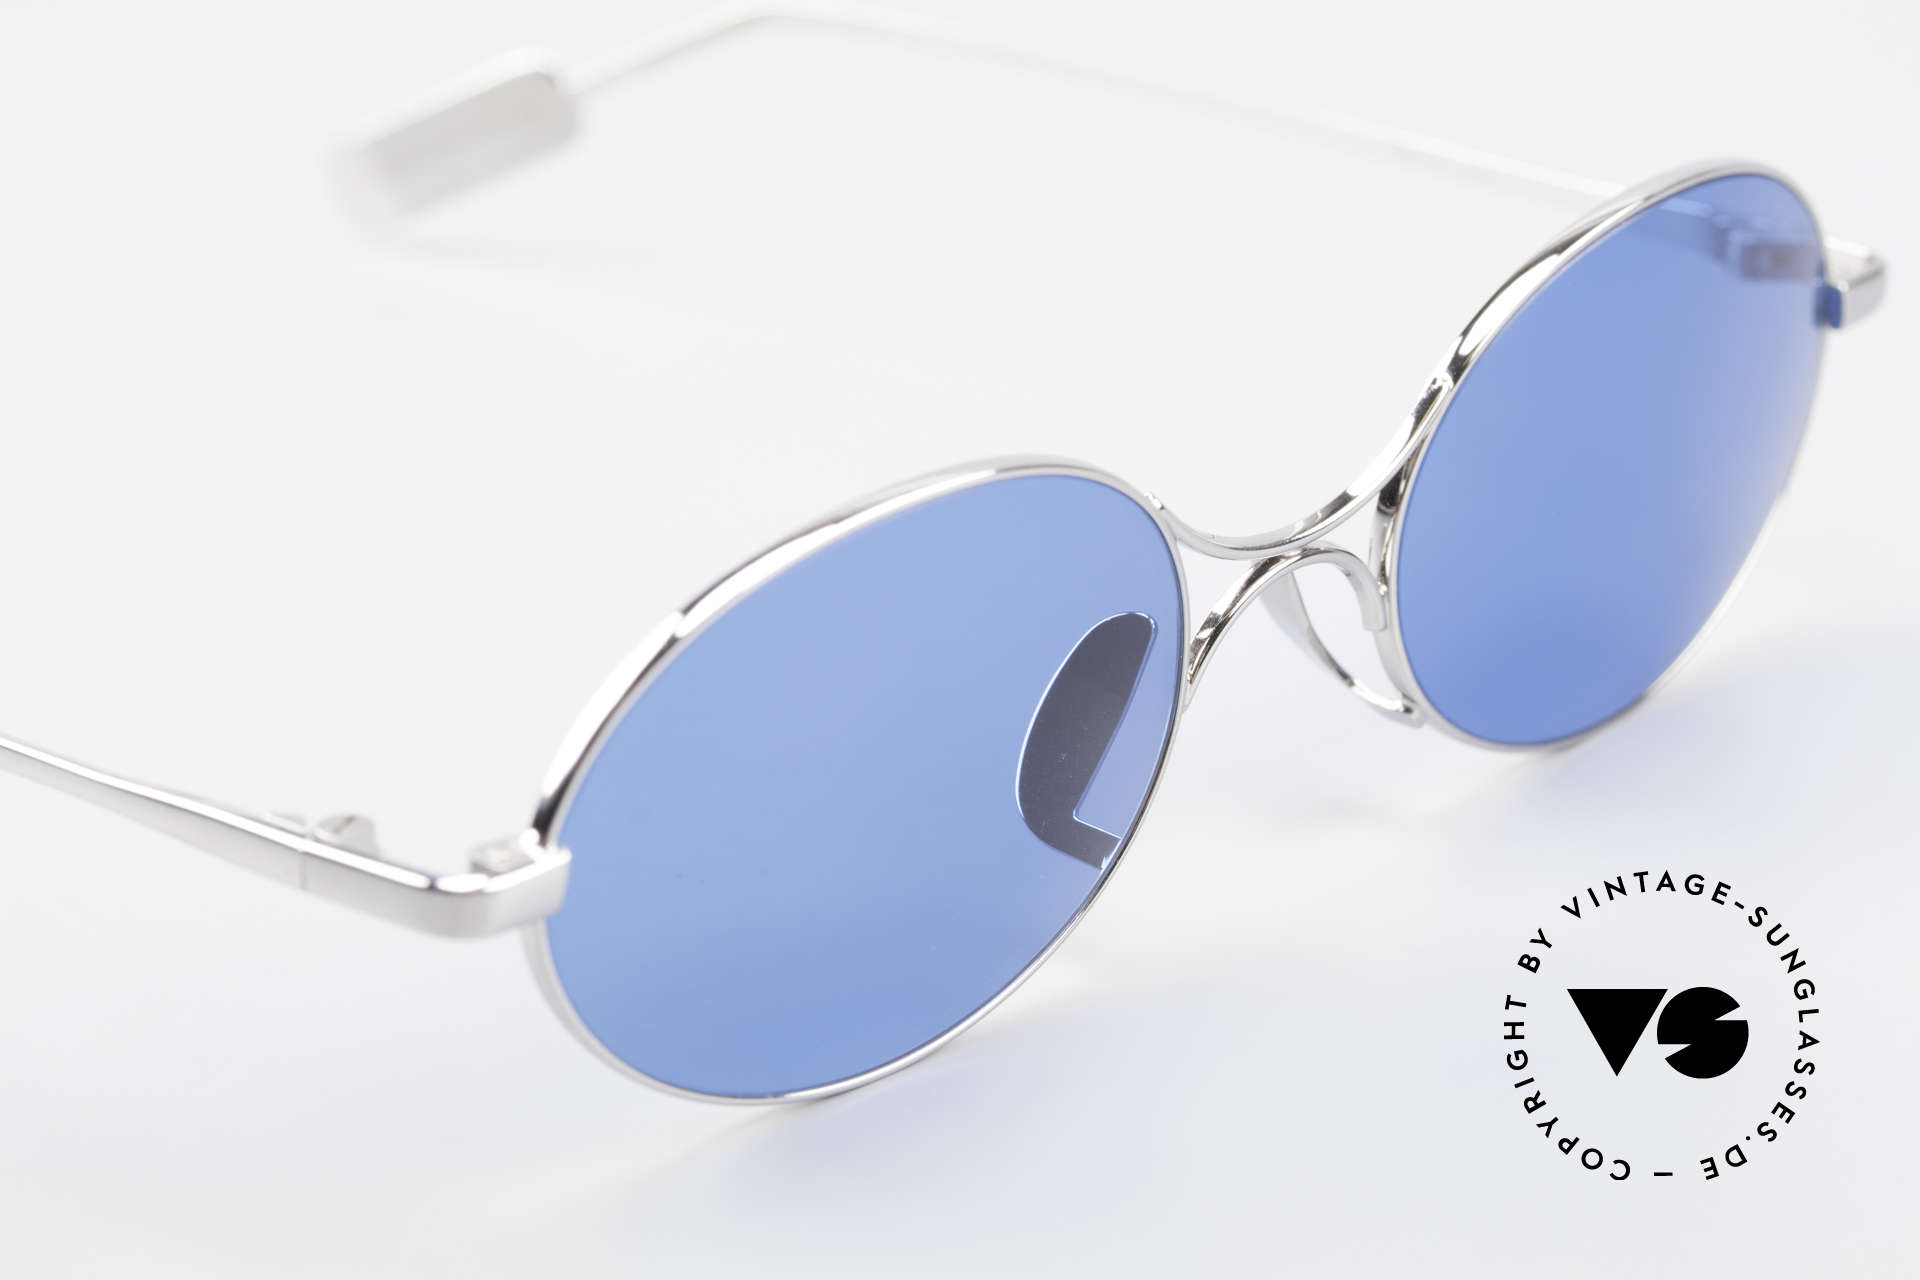 Jean Paul Gaultier 55-0173 Oval JPG Designer Sunglasses, 2nd hand, but in a mint condition + orig. case, Made for Men and Women